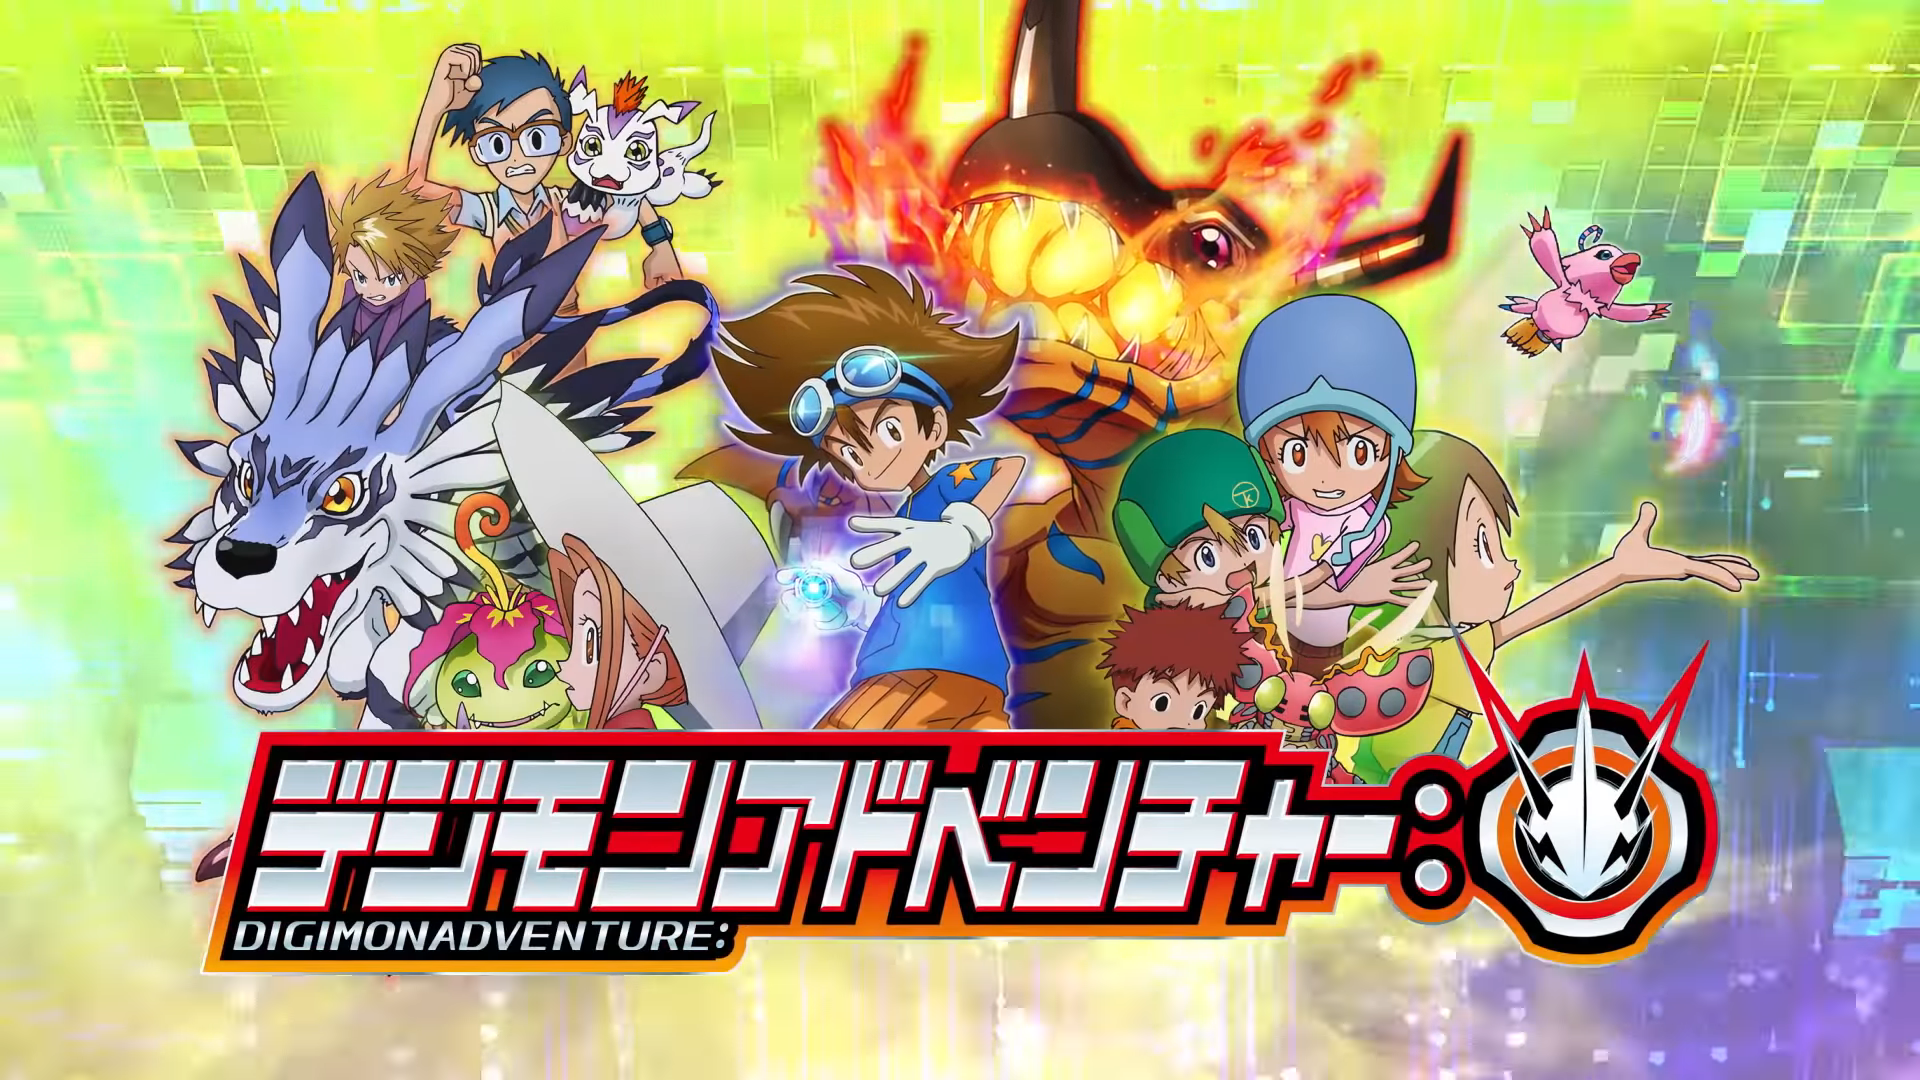 Photo of Digimon Adventure Episodios 24 al 27